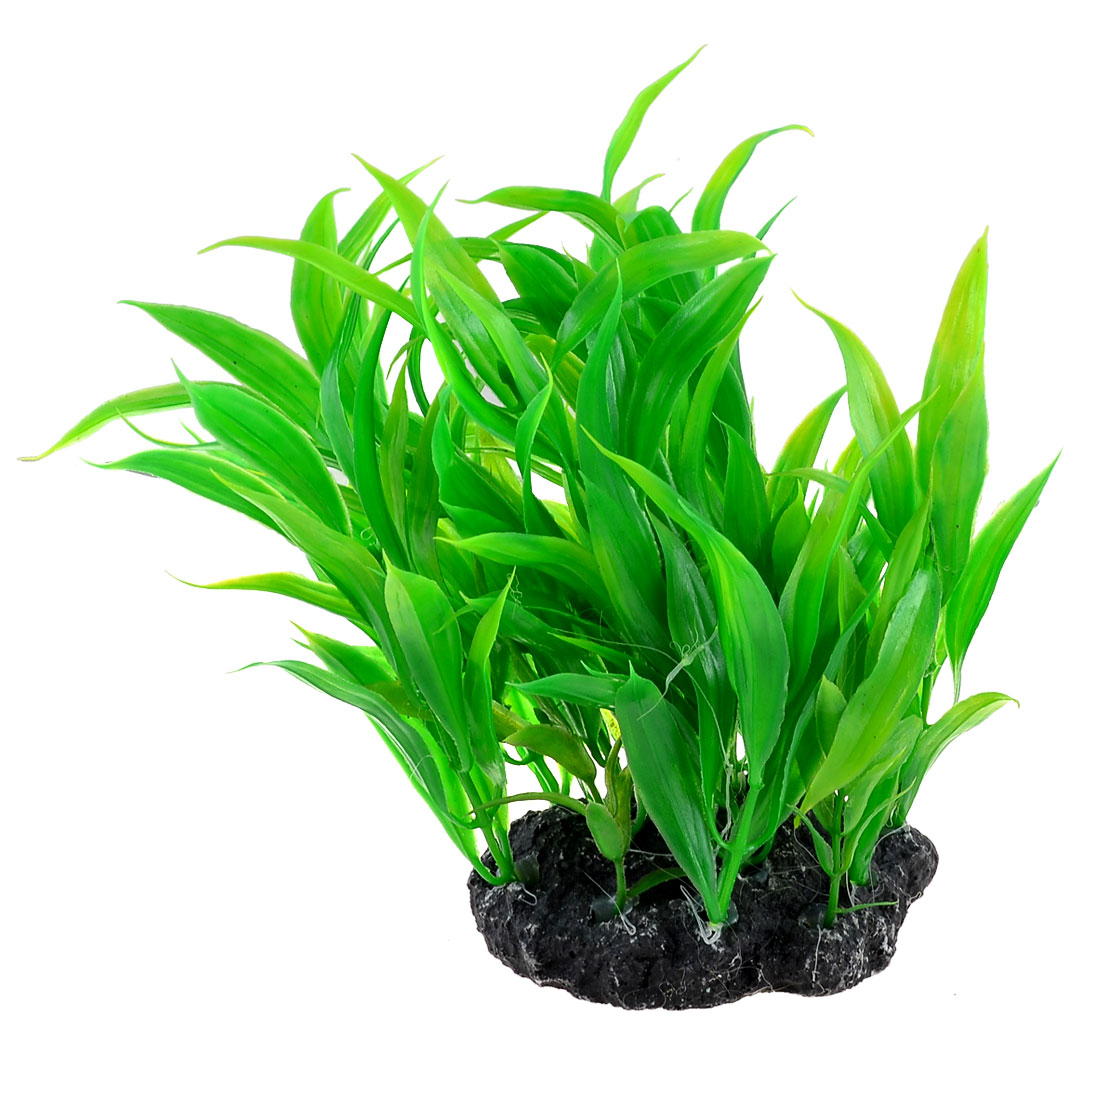 "5.9"" Height Green Plastic Aquatic Grass Plant for Aquarium Fish Tank"